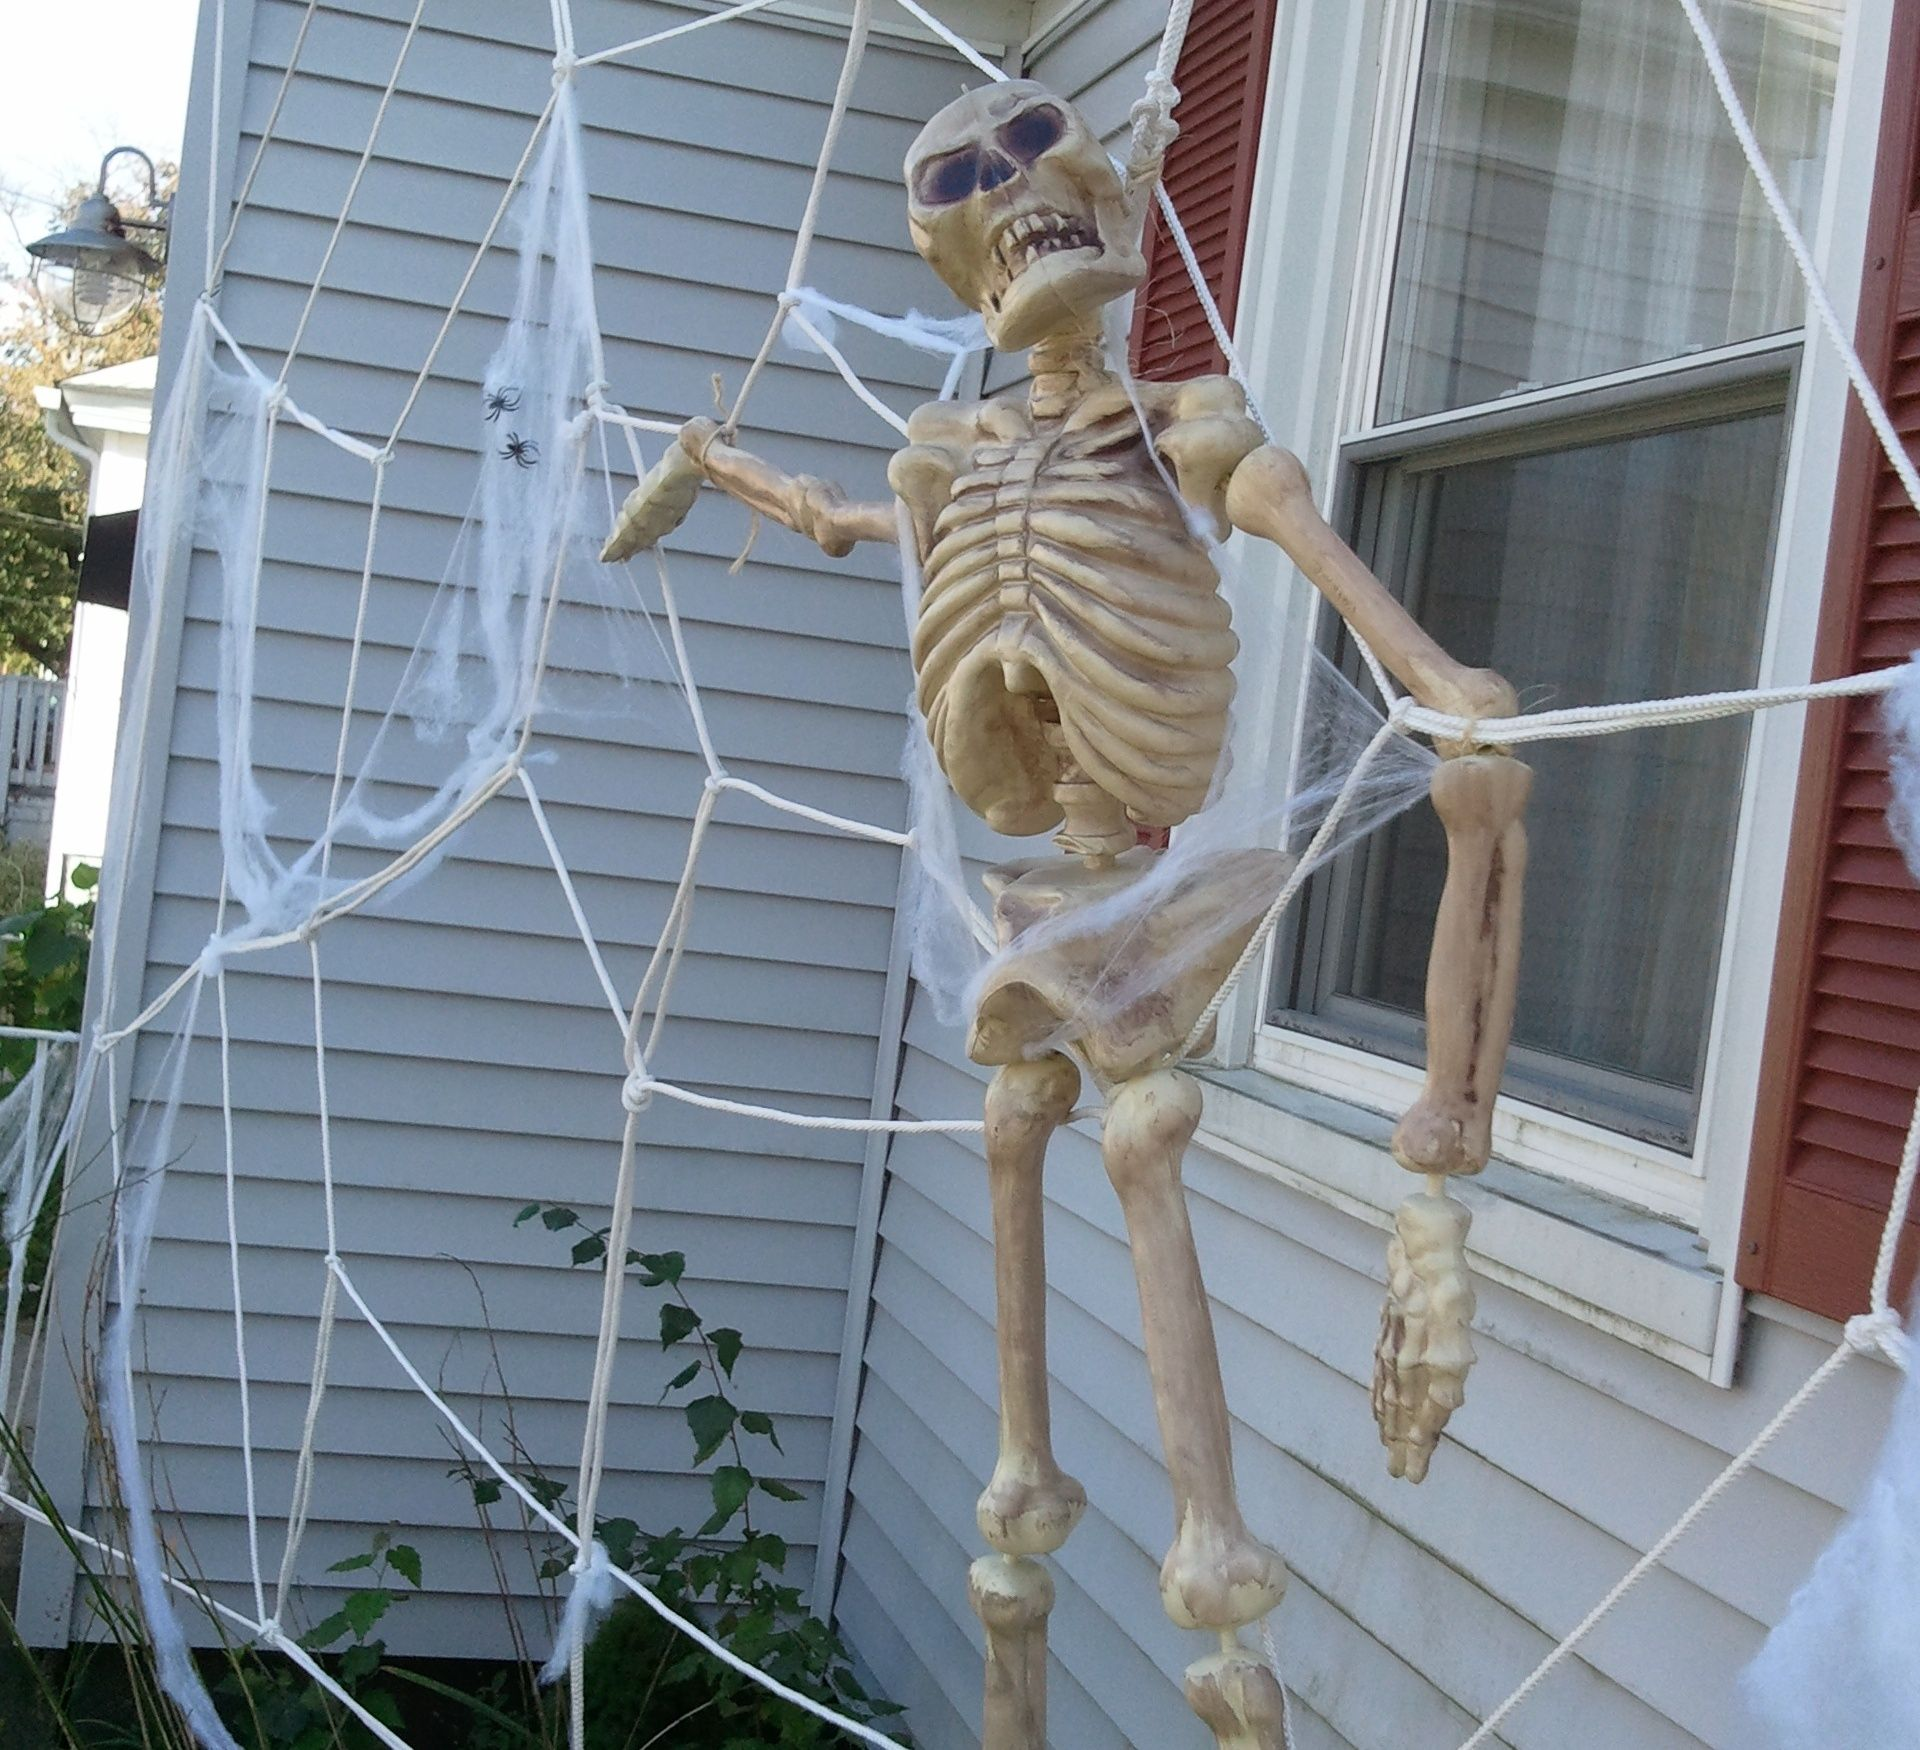 Giant Spiderweb House Decoration for Halloween! Decoration and